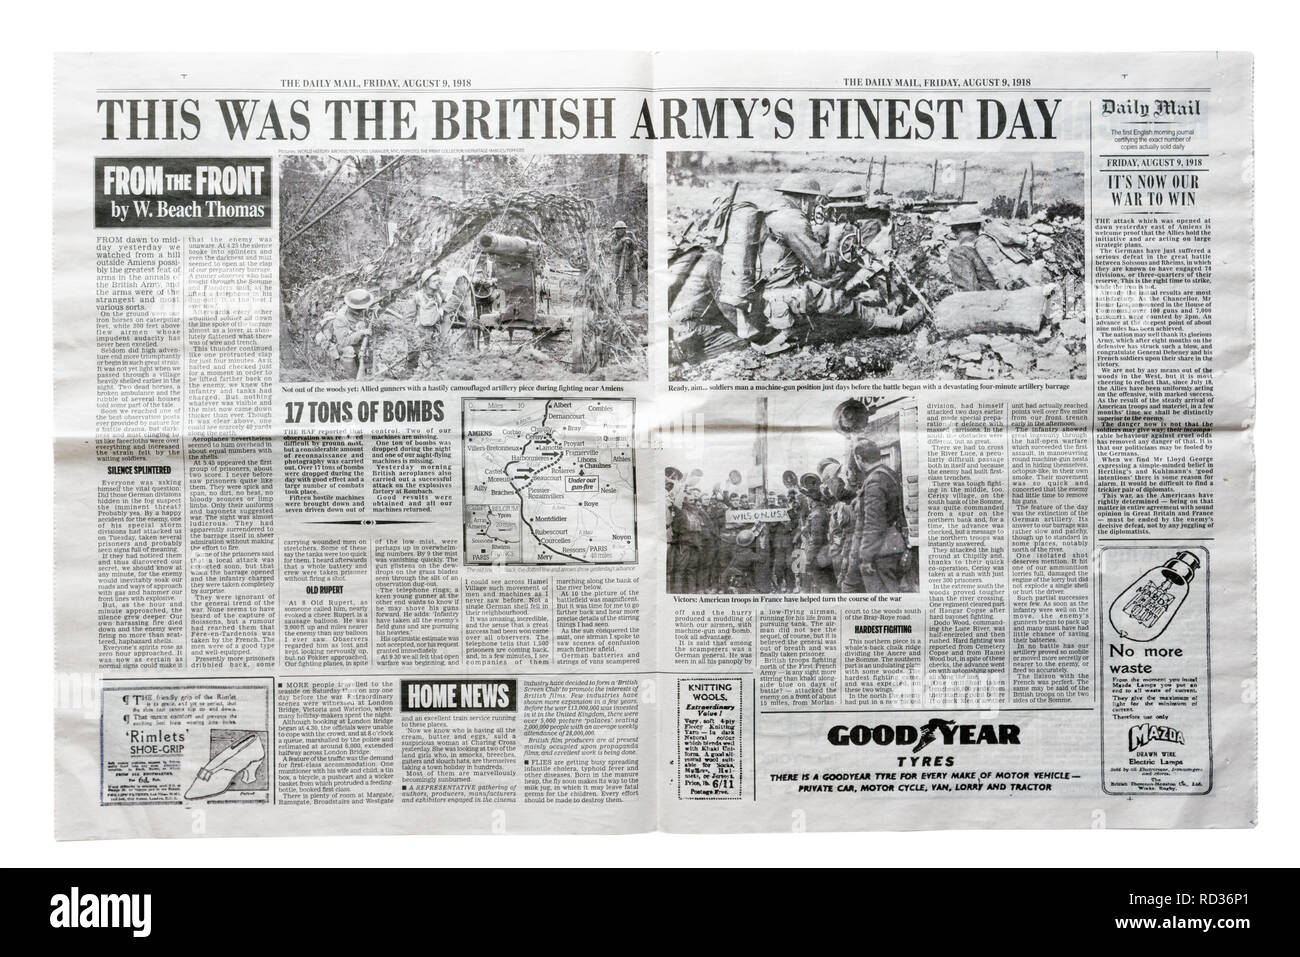 Middle pages of a reproduction Daily Mail from August 9 1918 with the headline This Was the British Army's Finest Day, an article by W Beach Thomas Stock Photo